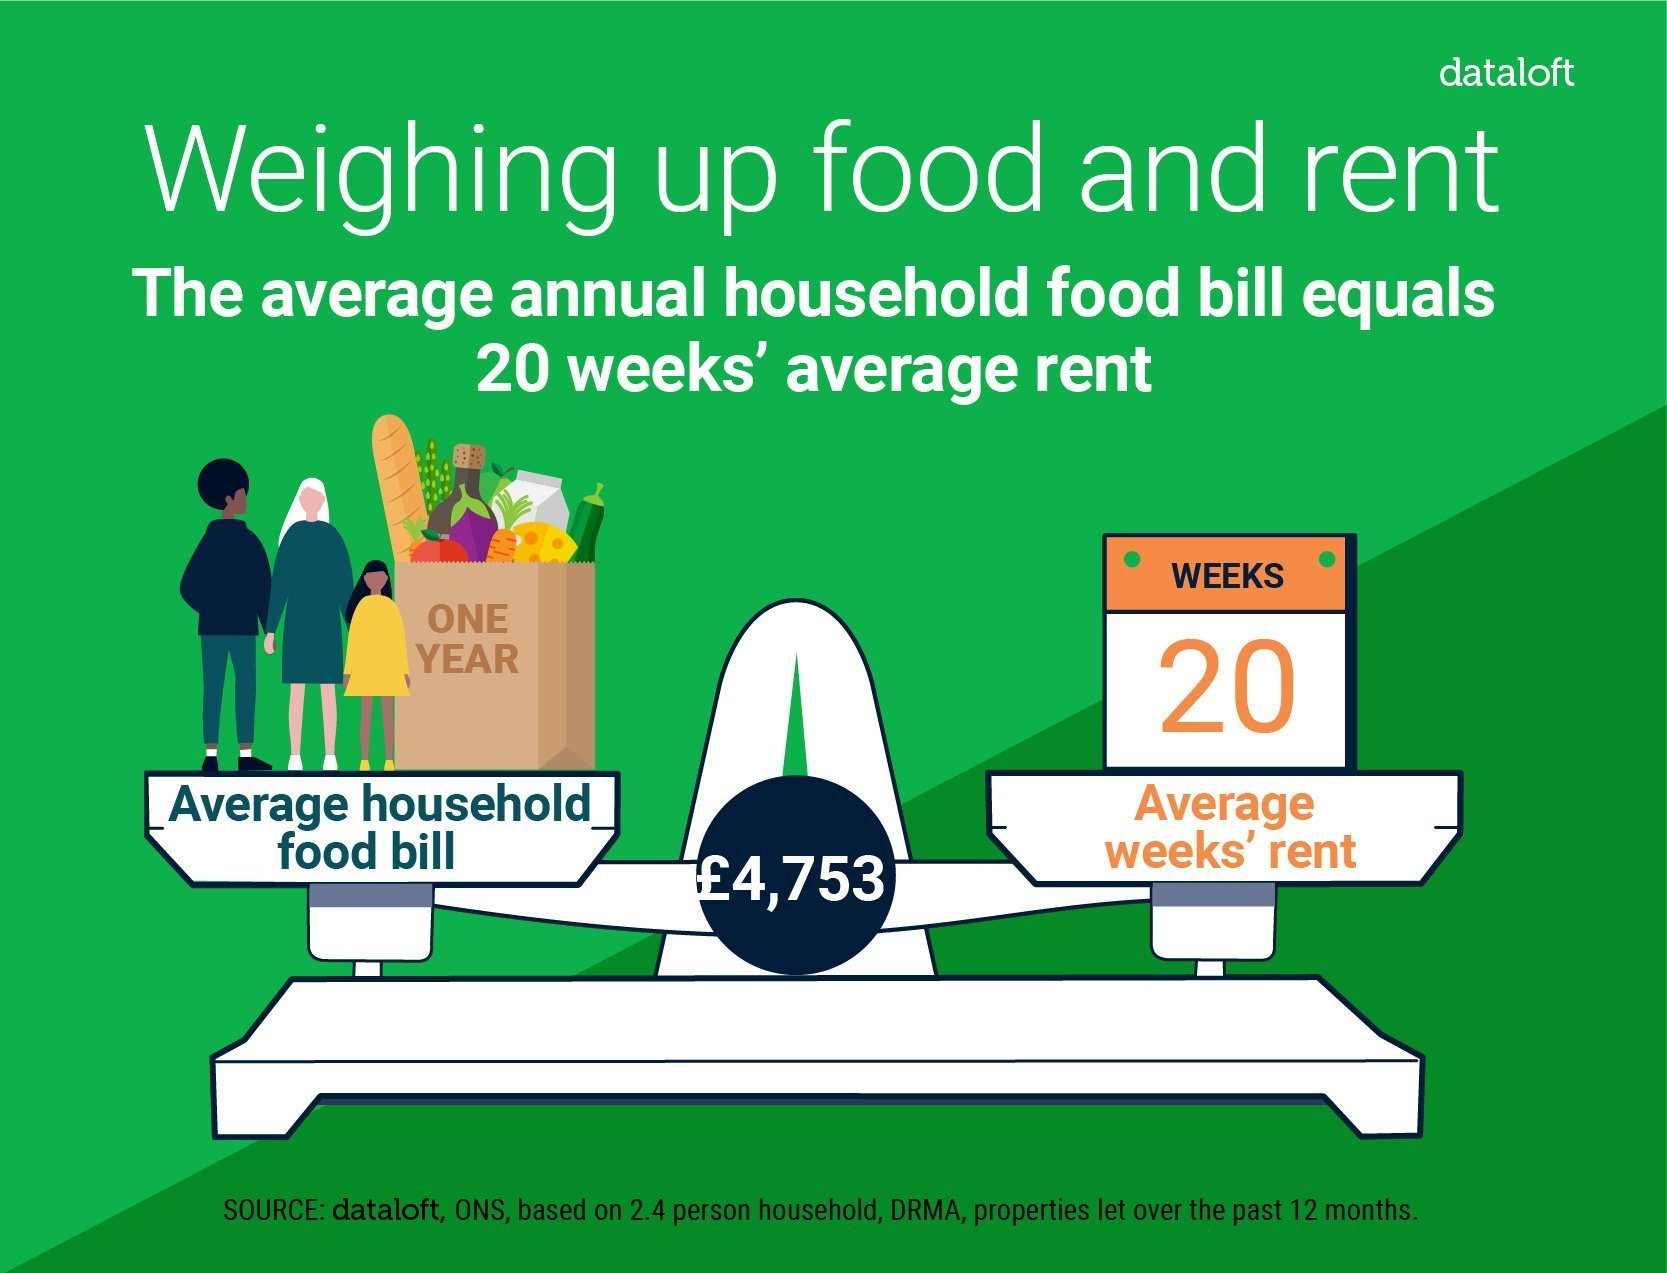 Weighing Up Food and Rent